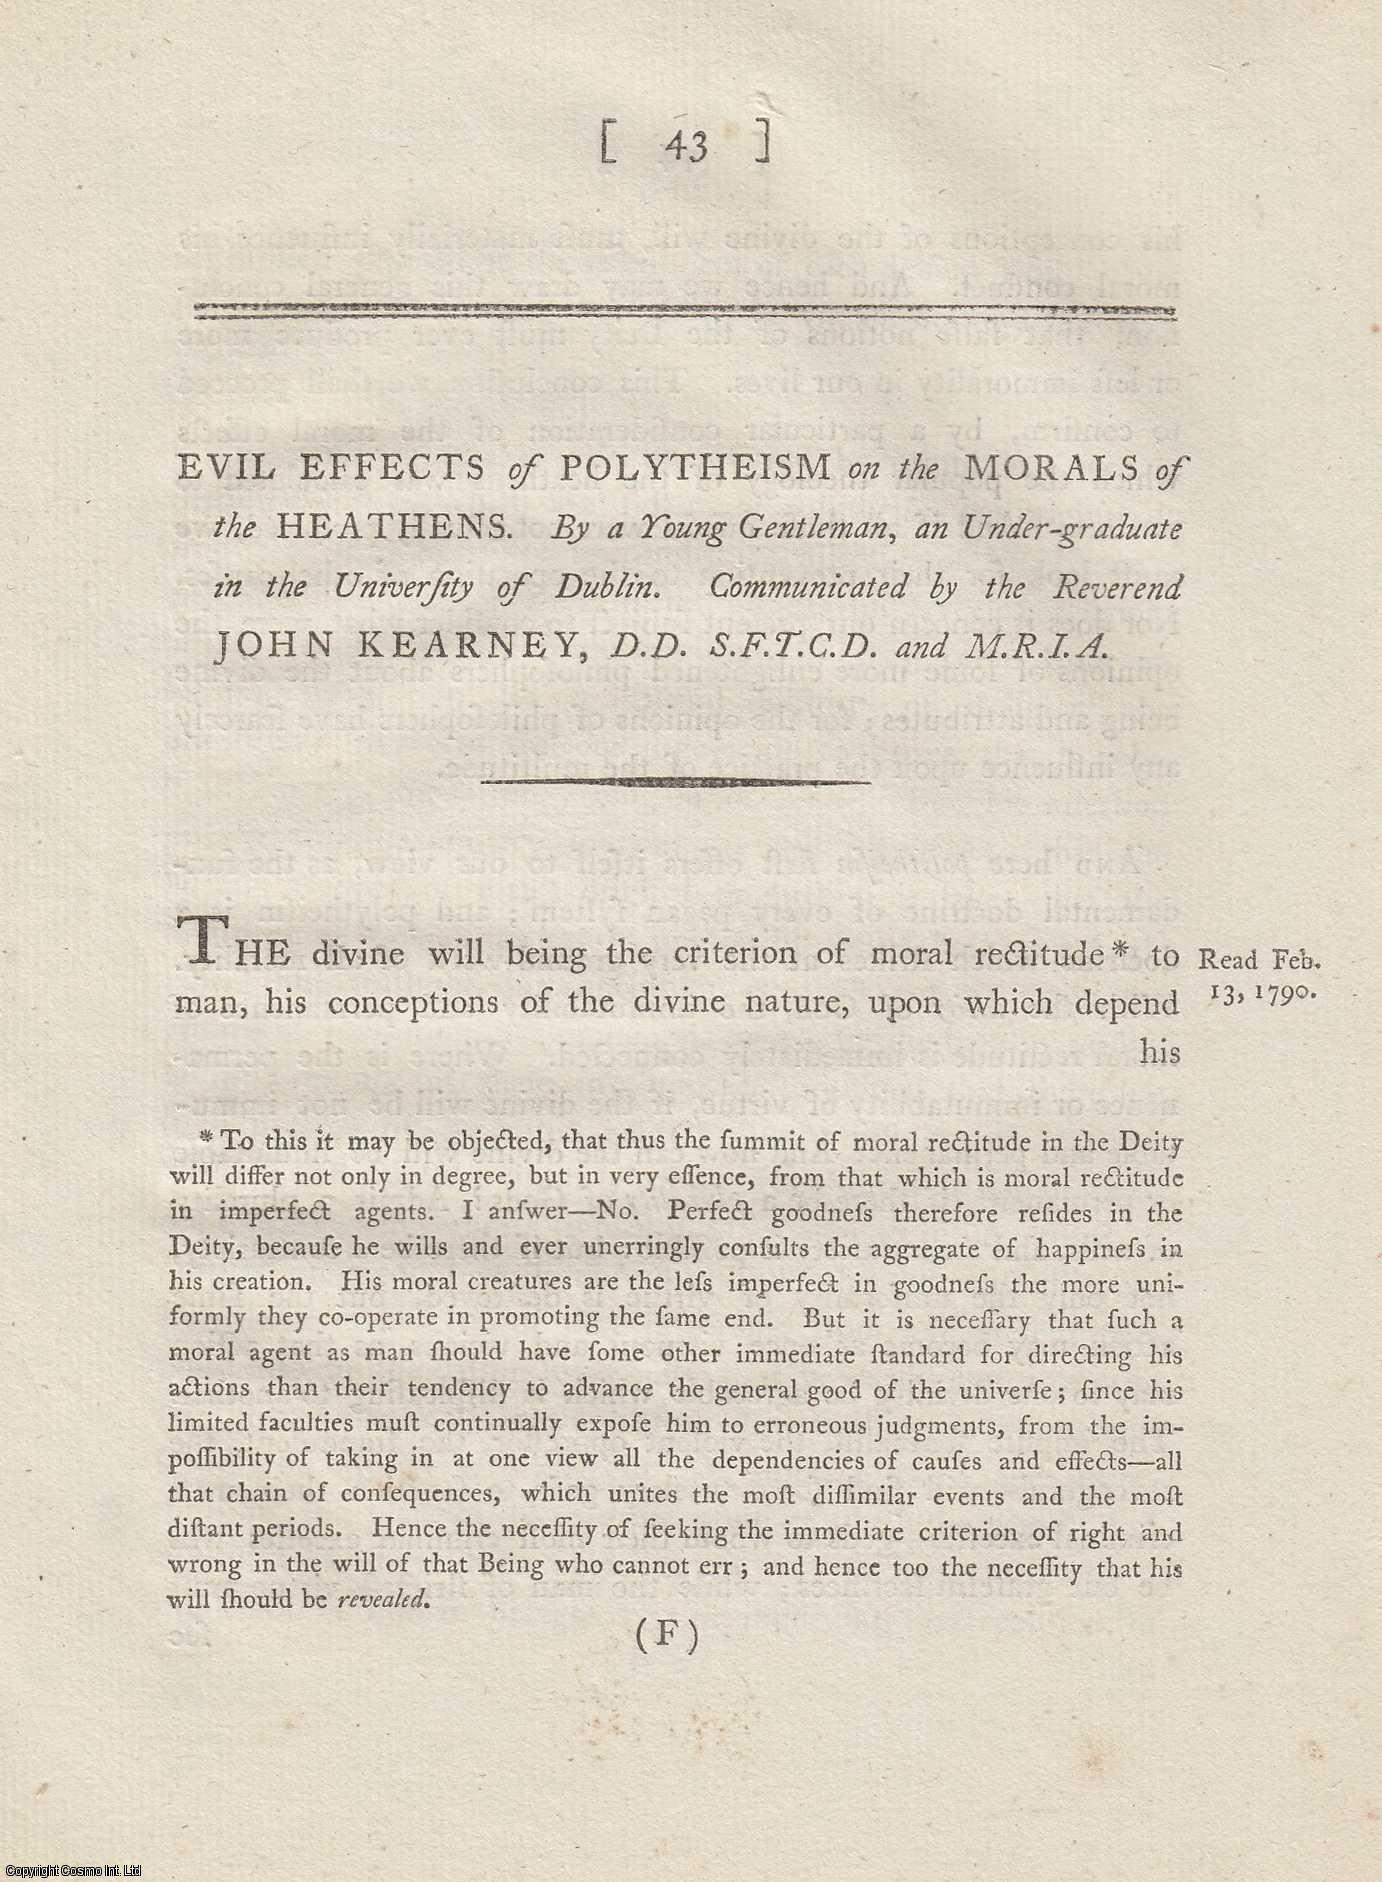 Evil Effects of Polytheism on the Morals of the Heathens.  From Transactions of the Royal Irish Academy., Kearney, John.